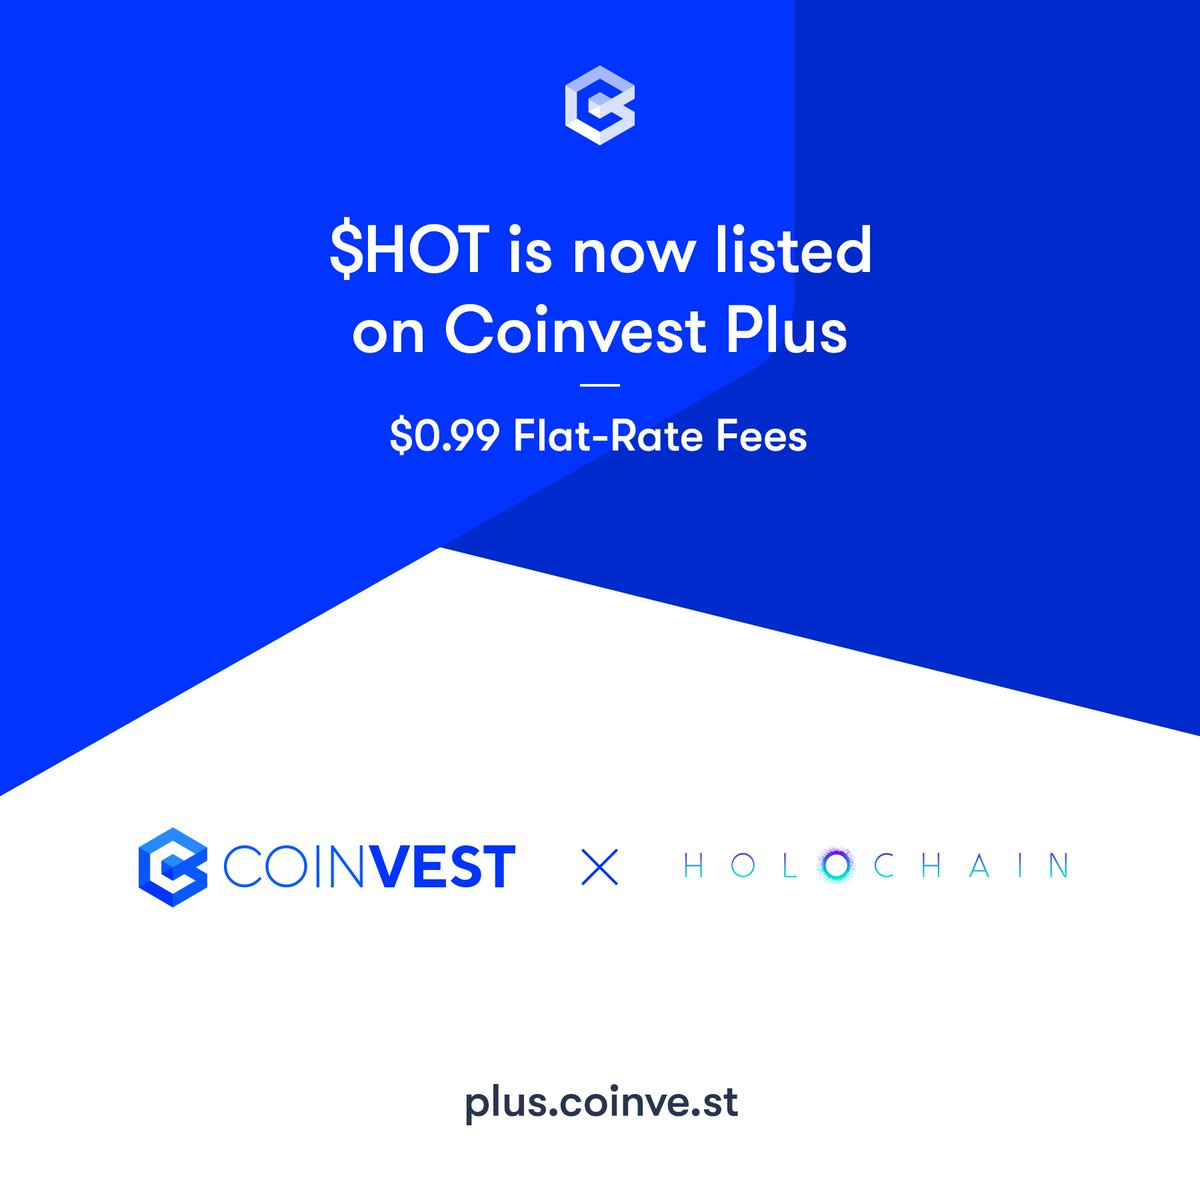 Coinvest on Twitter: